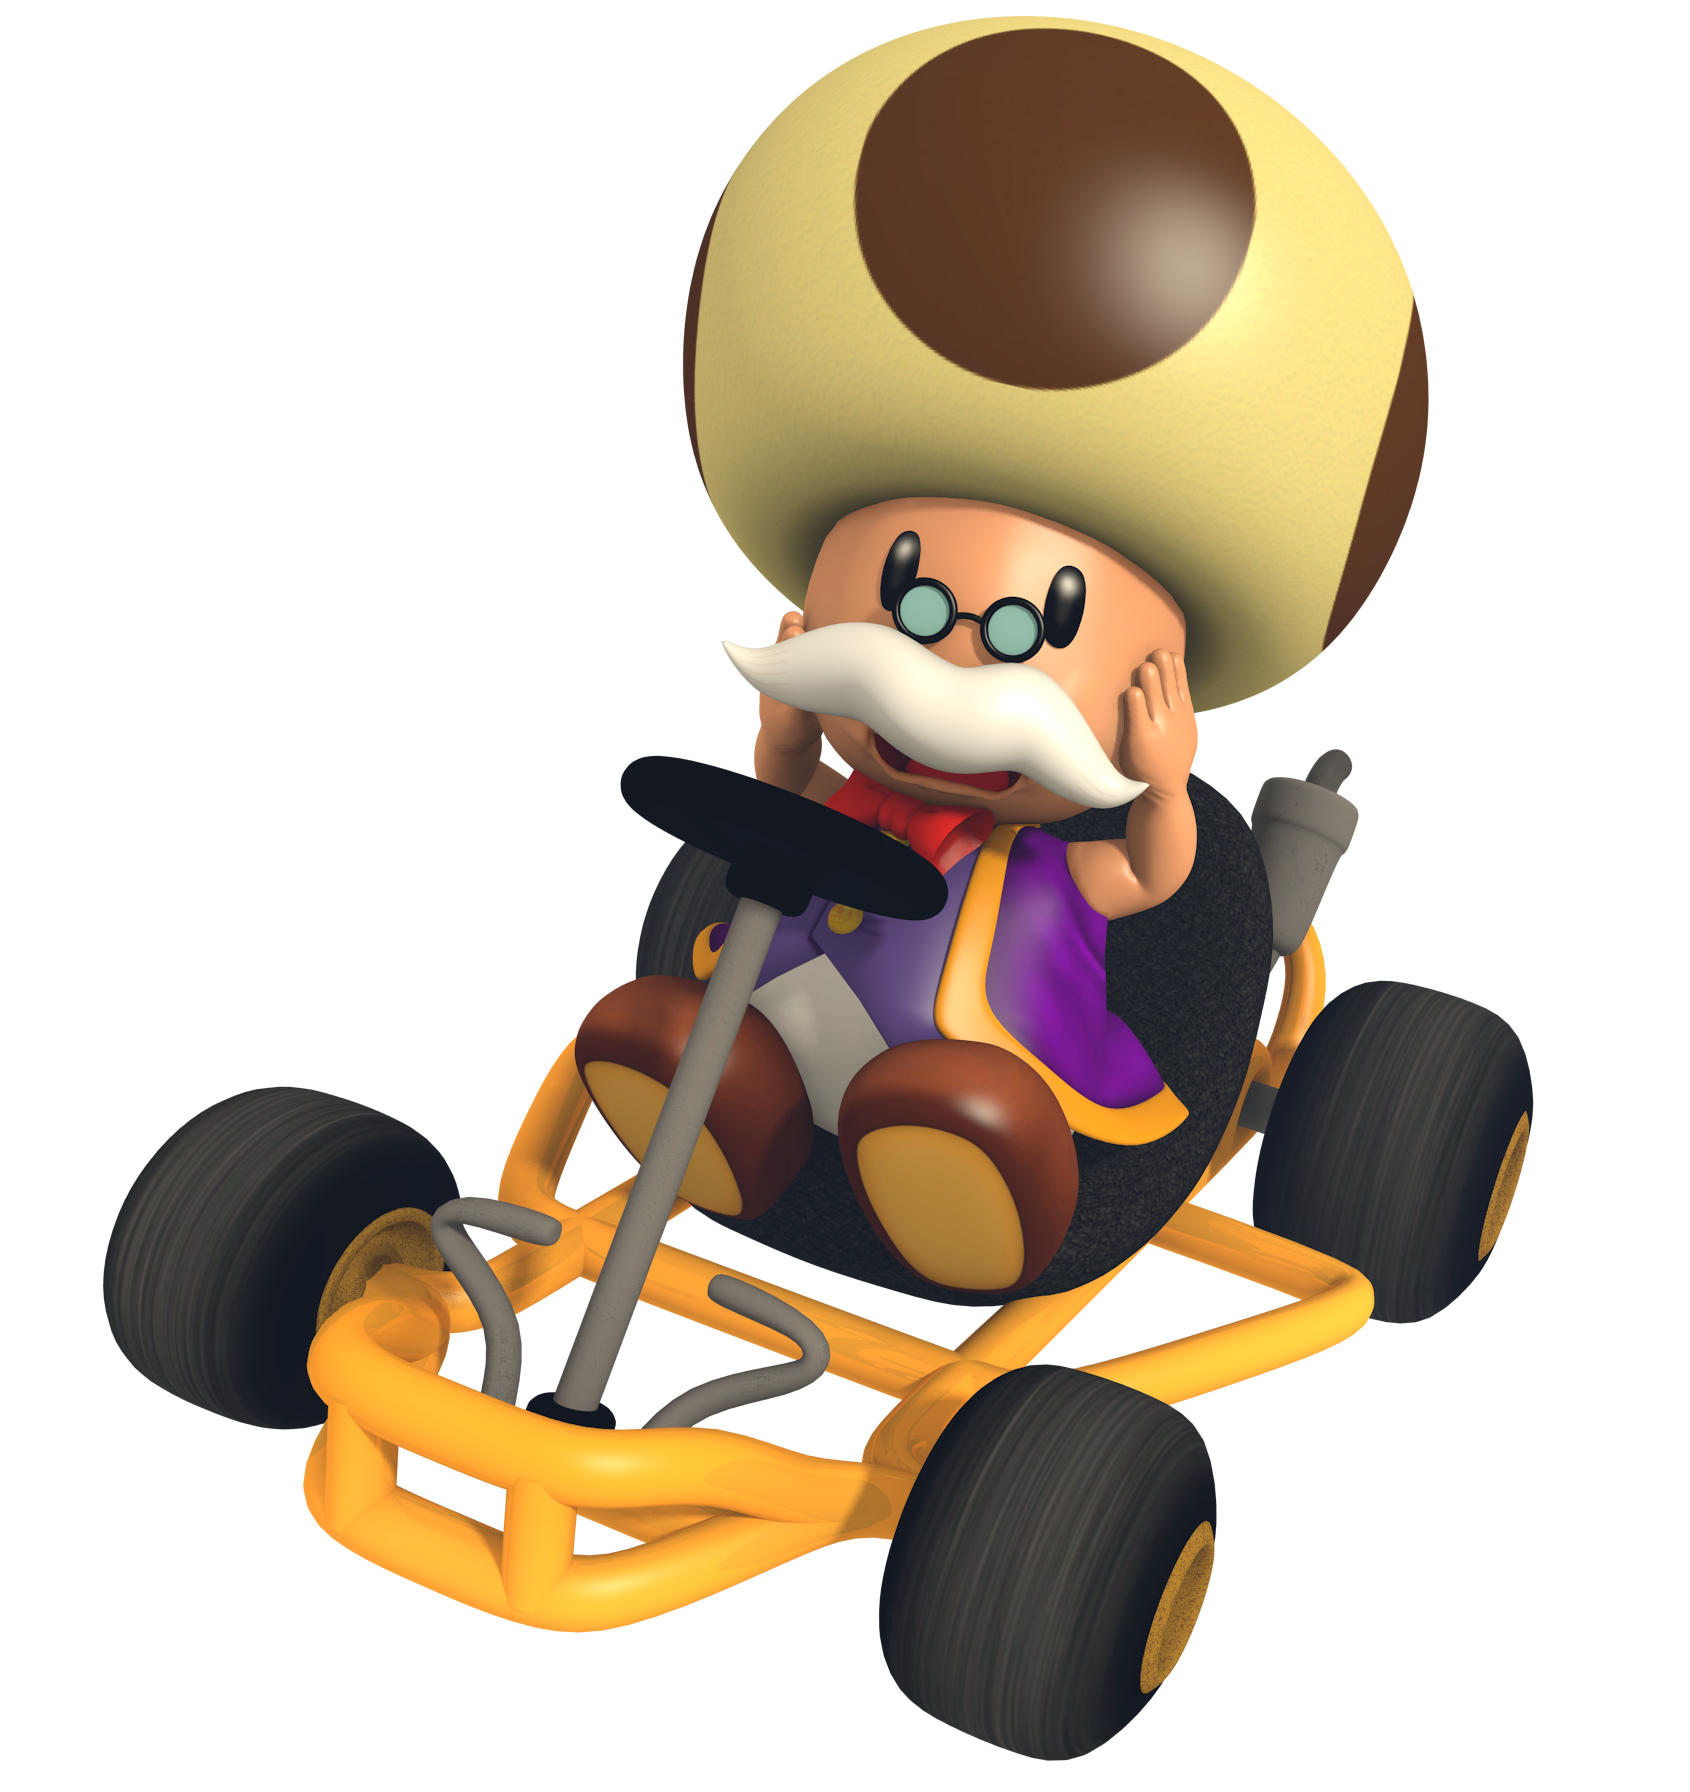 kart frei Toadsworth   Mario Kart Commemorative Pack by Vinfreild on DeviantArt kart frei